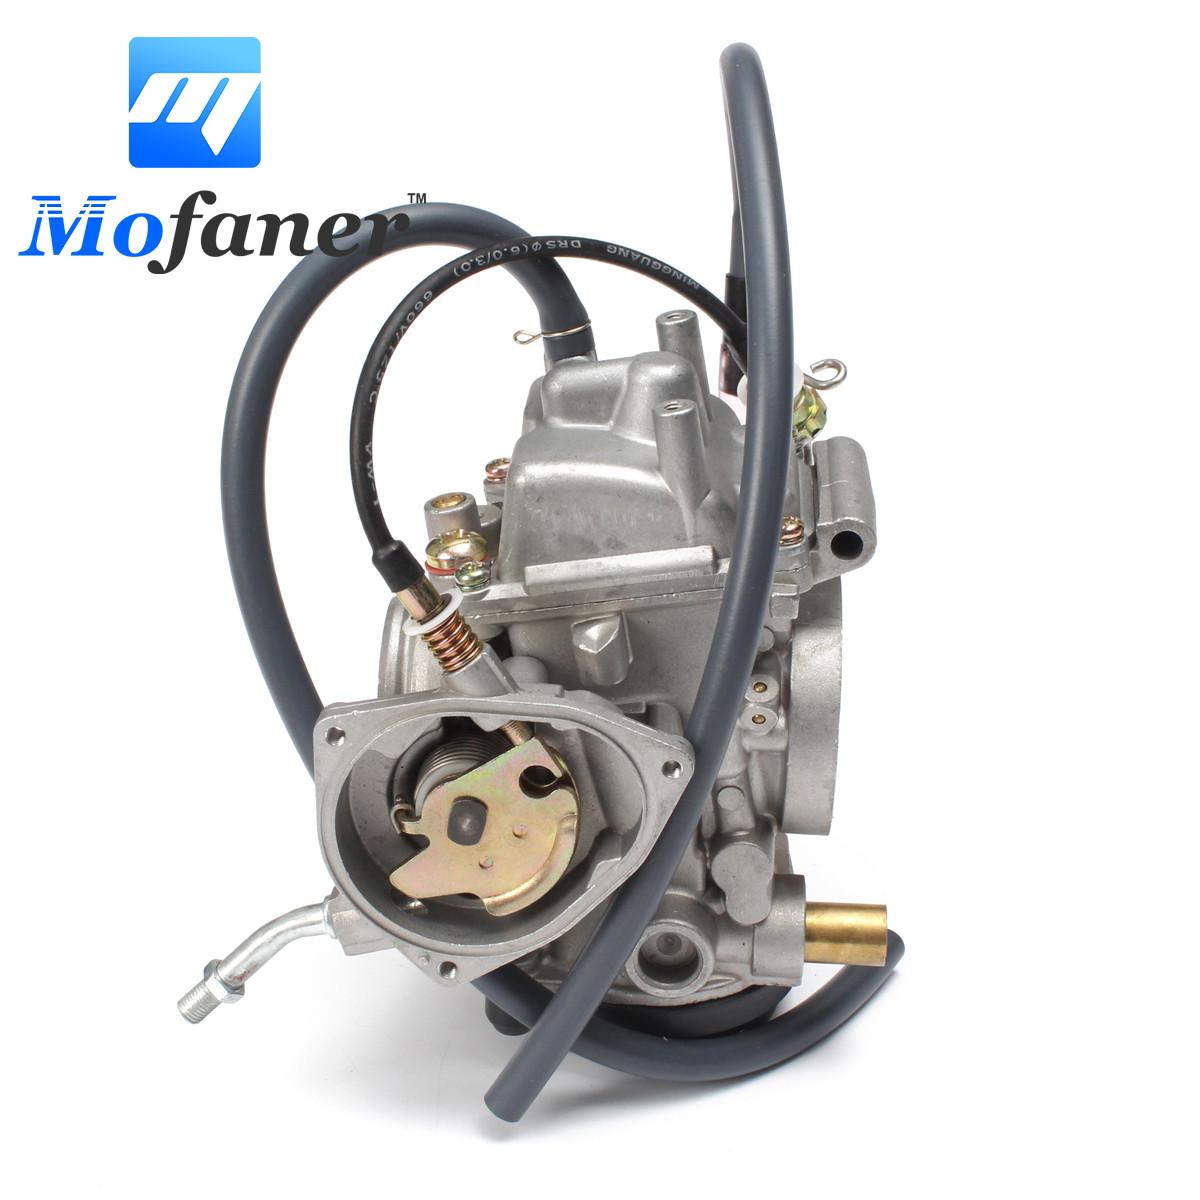 Motorcycle Engine Carburetor Carb Kit Replacement For Yamaha ATV Grizzly 450 4WD 2007-2012 Silver Overall Size 145mm atv parts accessories aluminum radiator for yamaha atv banshee yfz350 1987 2007 motorcycle parts replacement